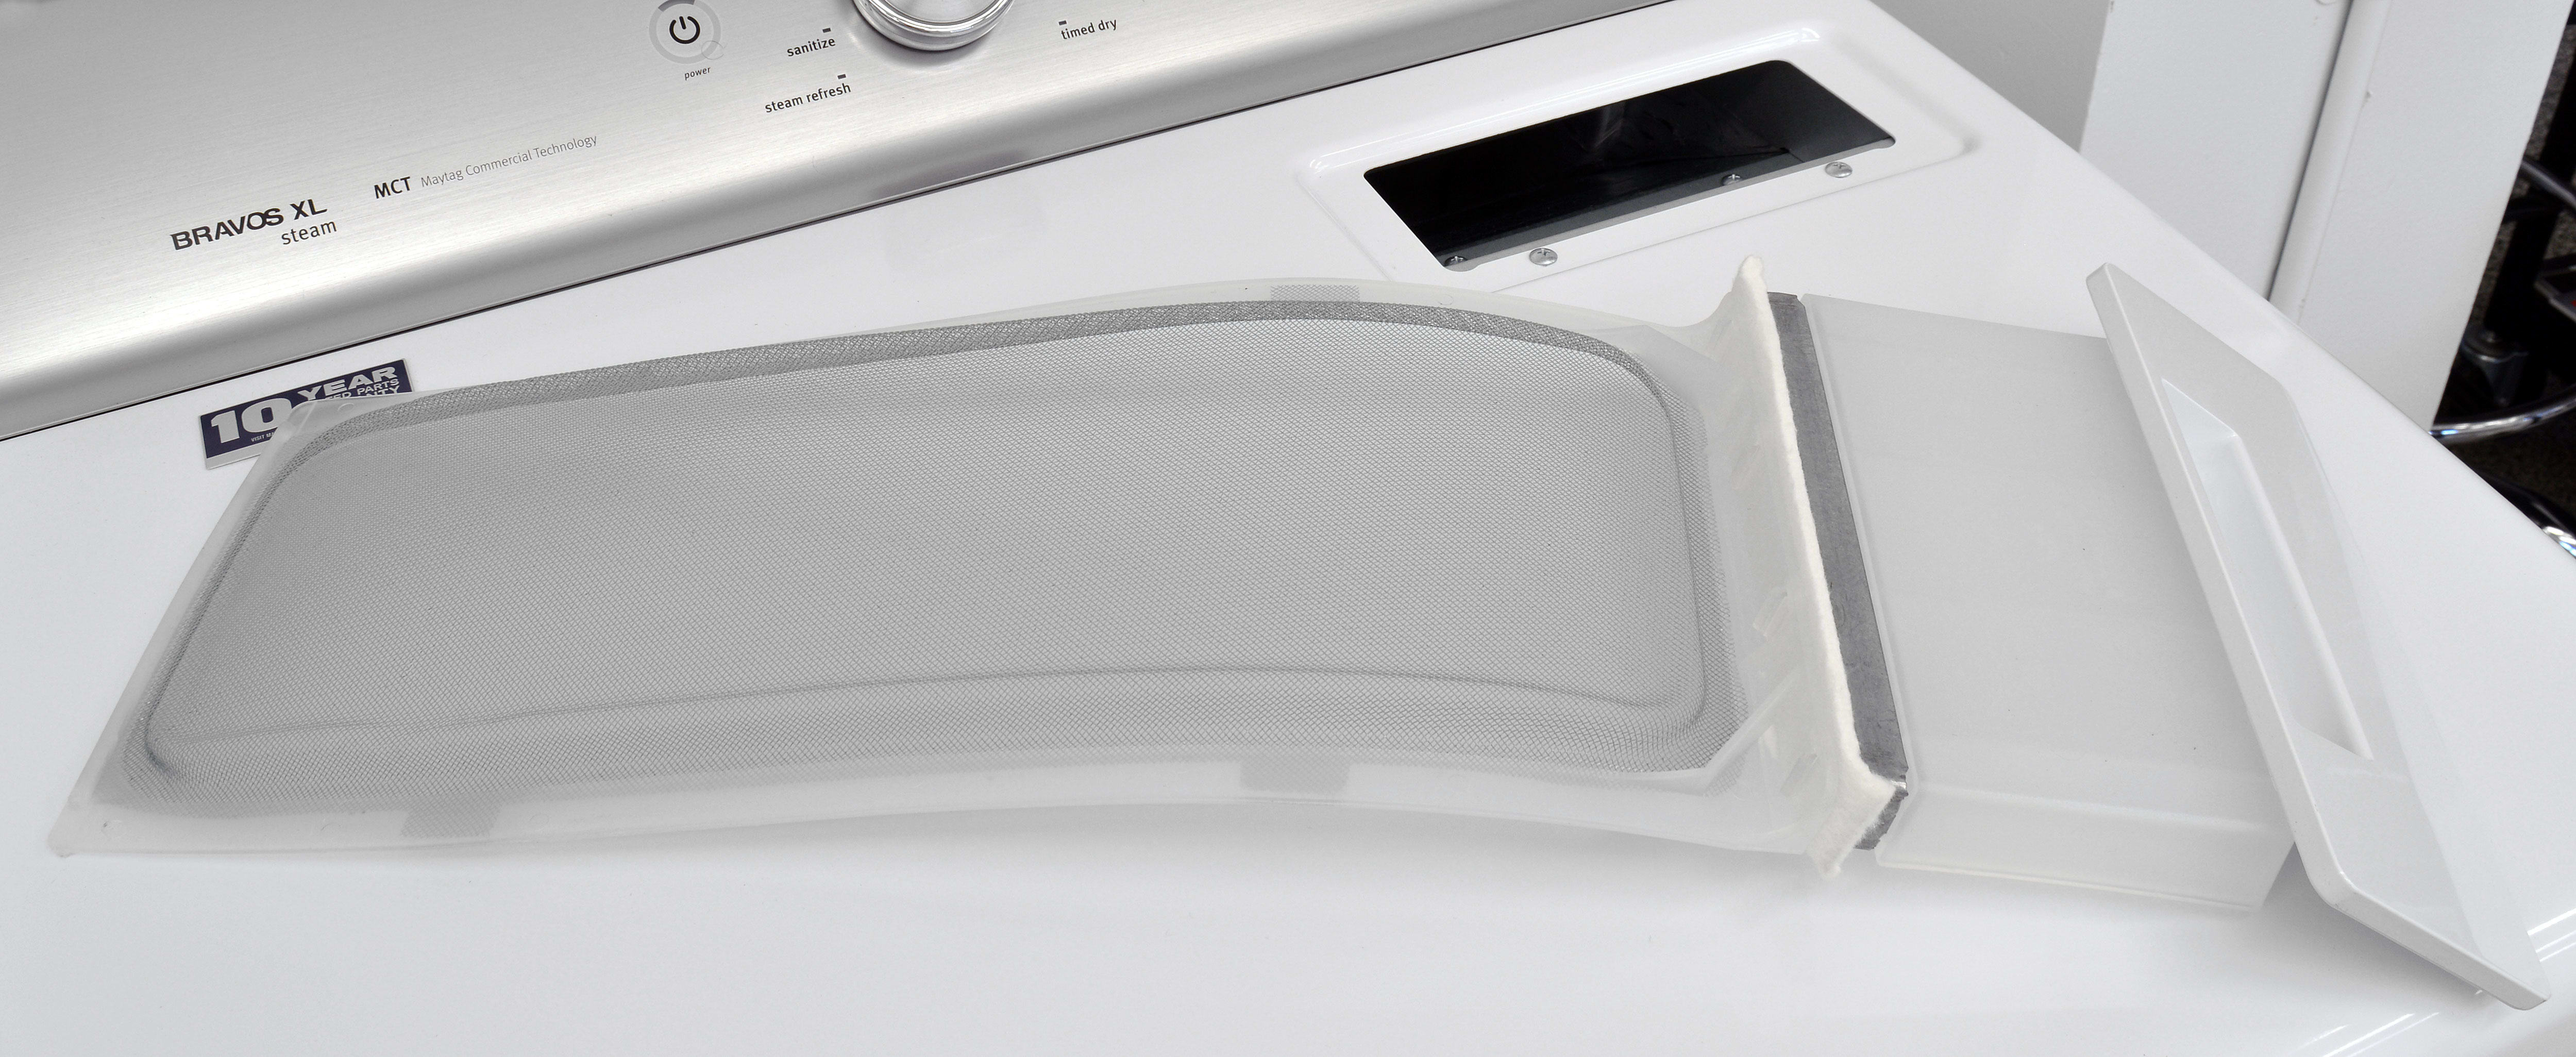 A pullout is probably the most dated feature on the Maytag Bravos MEDB755DW.